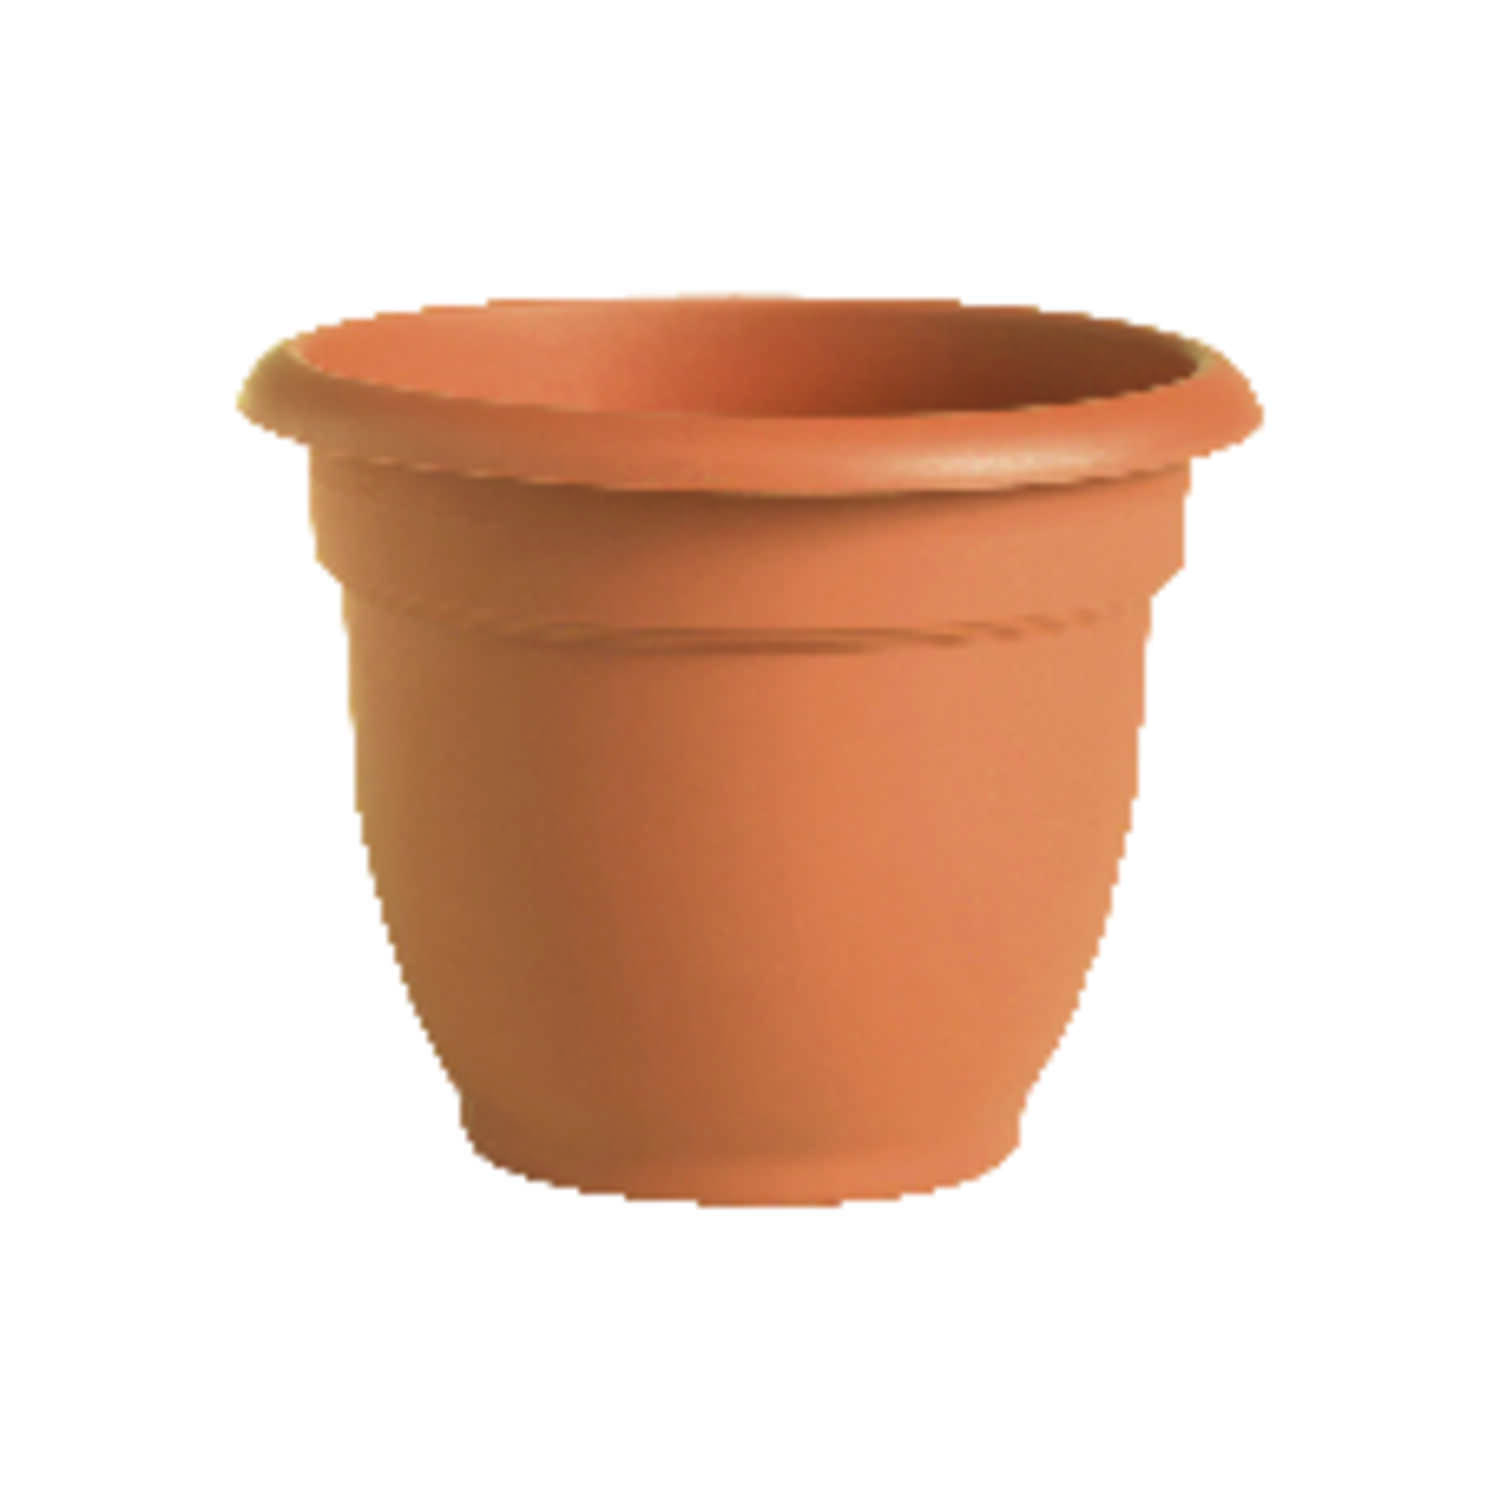 Bloem  8 in. Dia. Terracotta Clay  Resin  Ariana  Planter